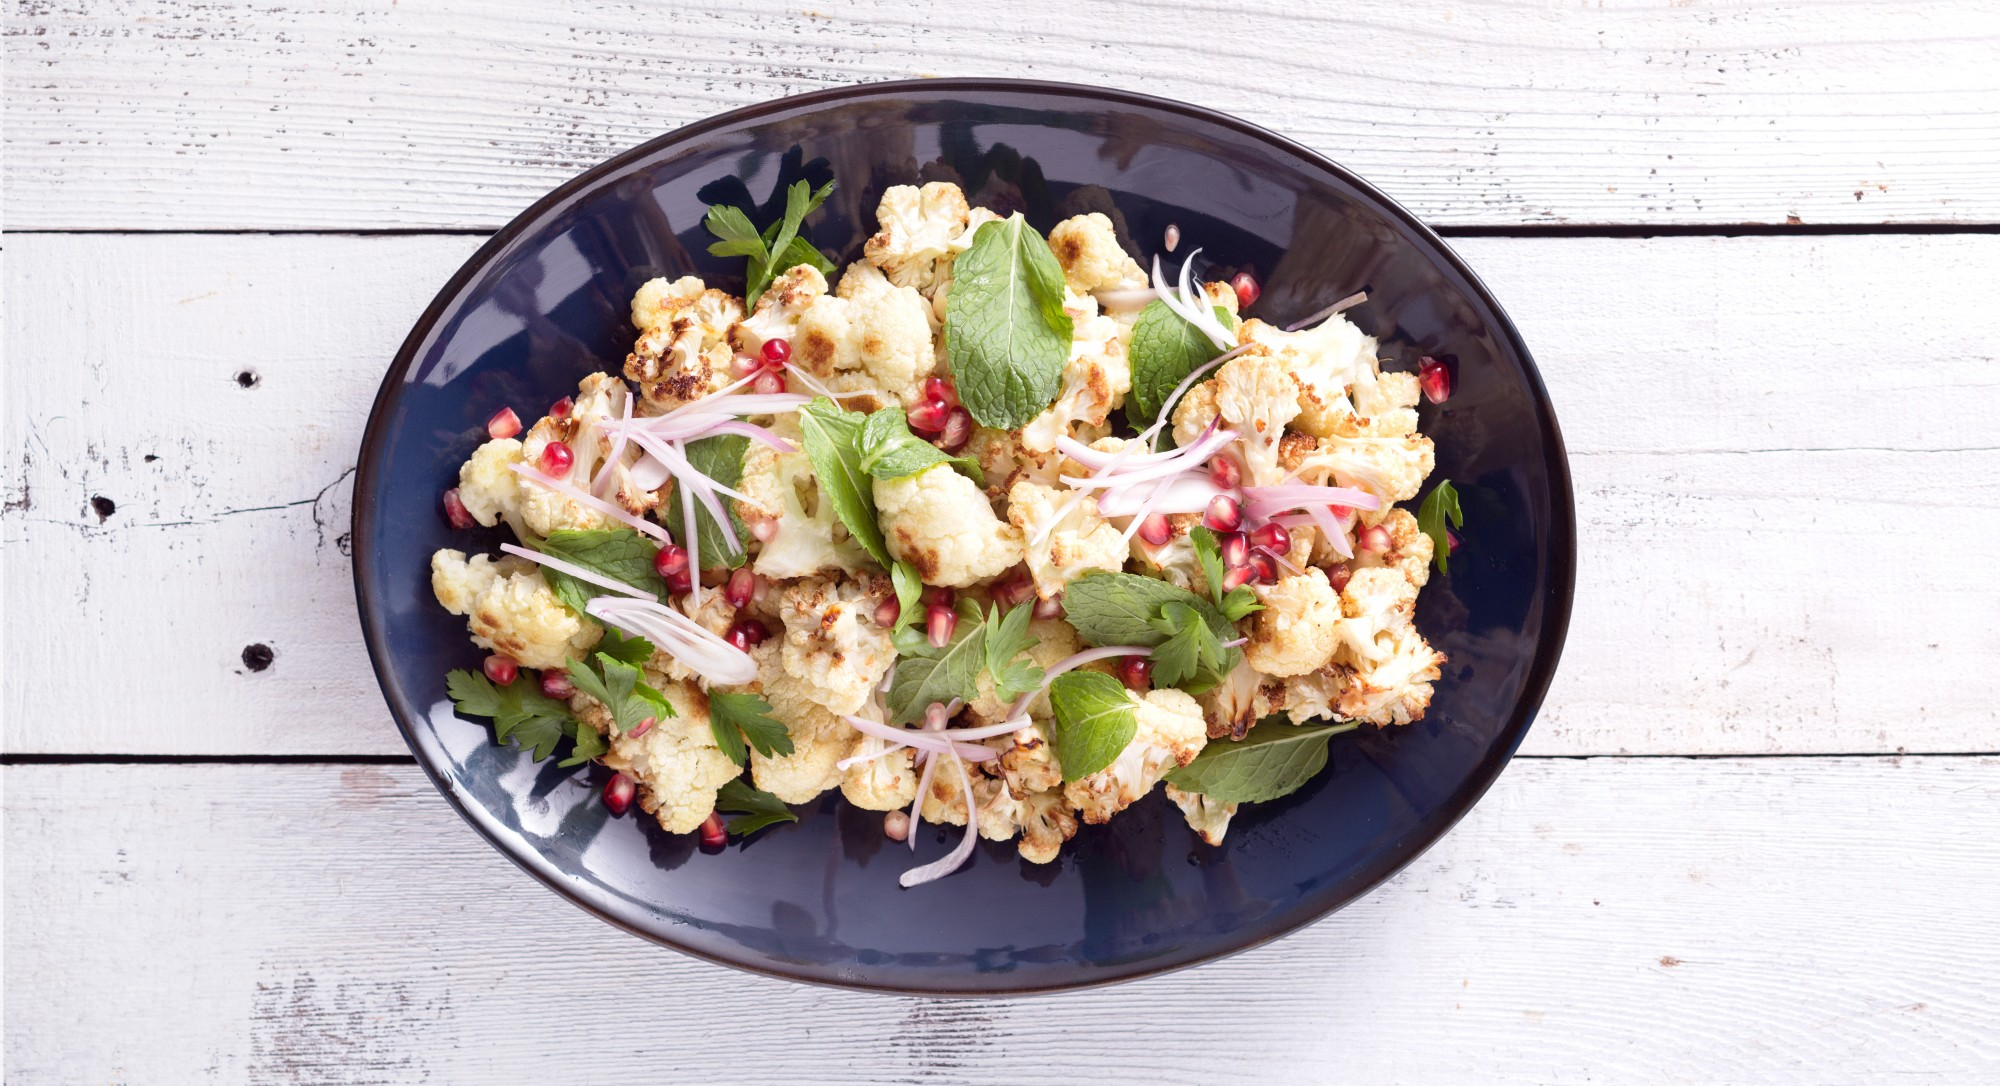 A Creative Roasted Cauliflower Salad Guaranteed to Wow Dinner Guests